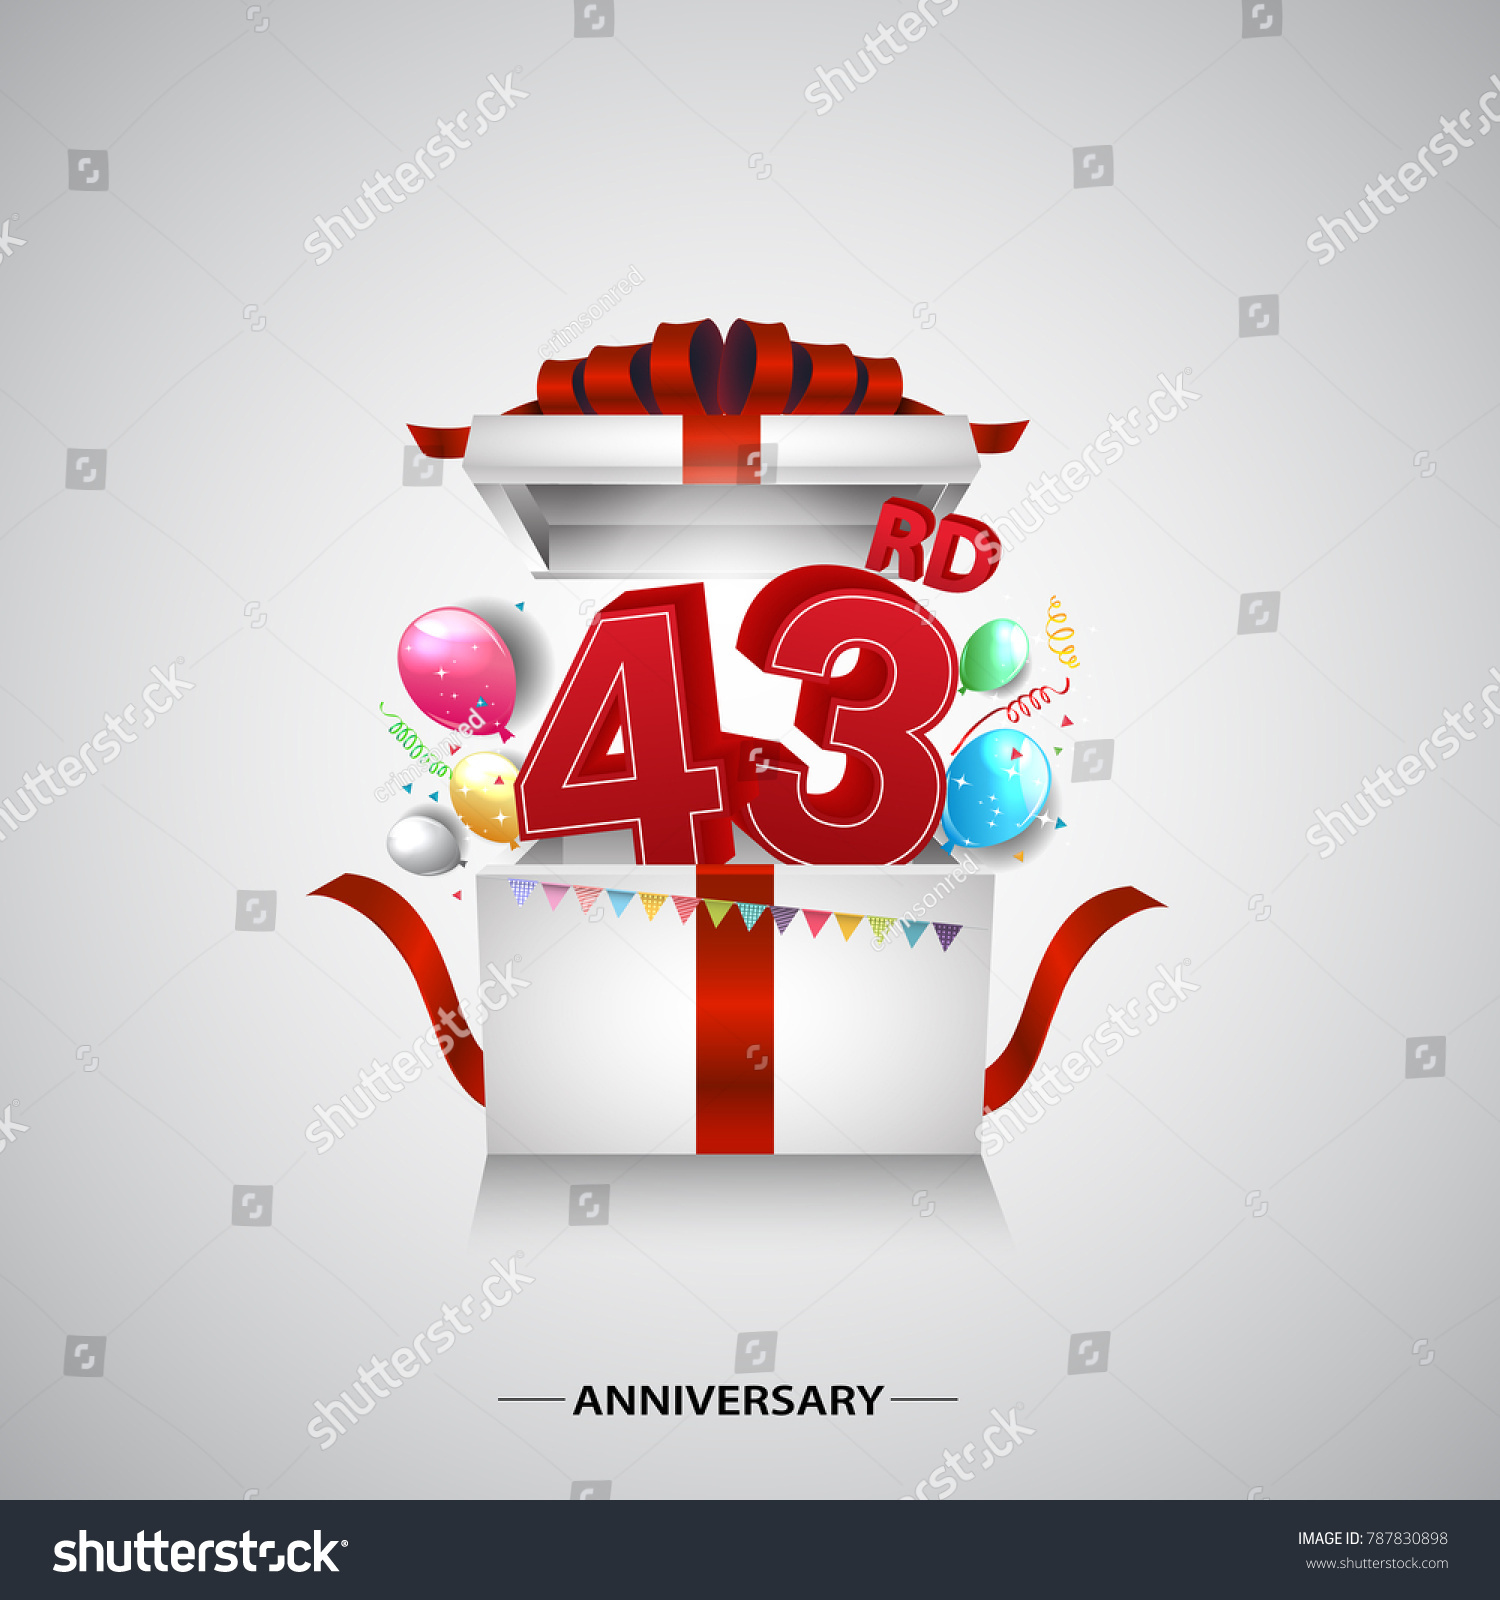 43rd Anniversary Design Red Number Inside Stock Vector Royalty Free